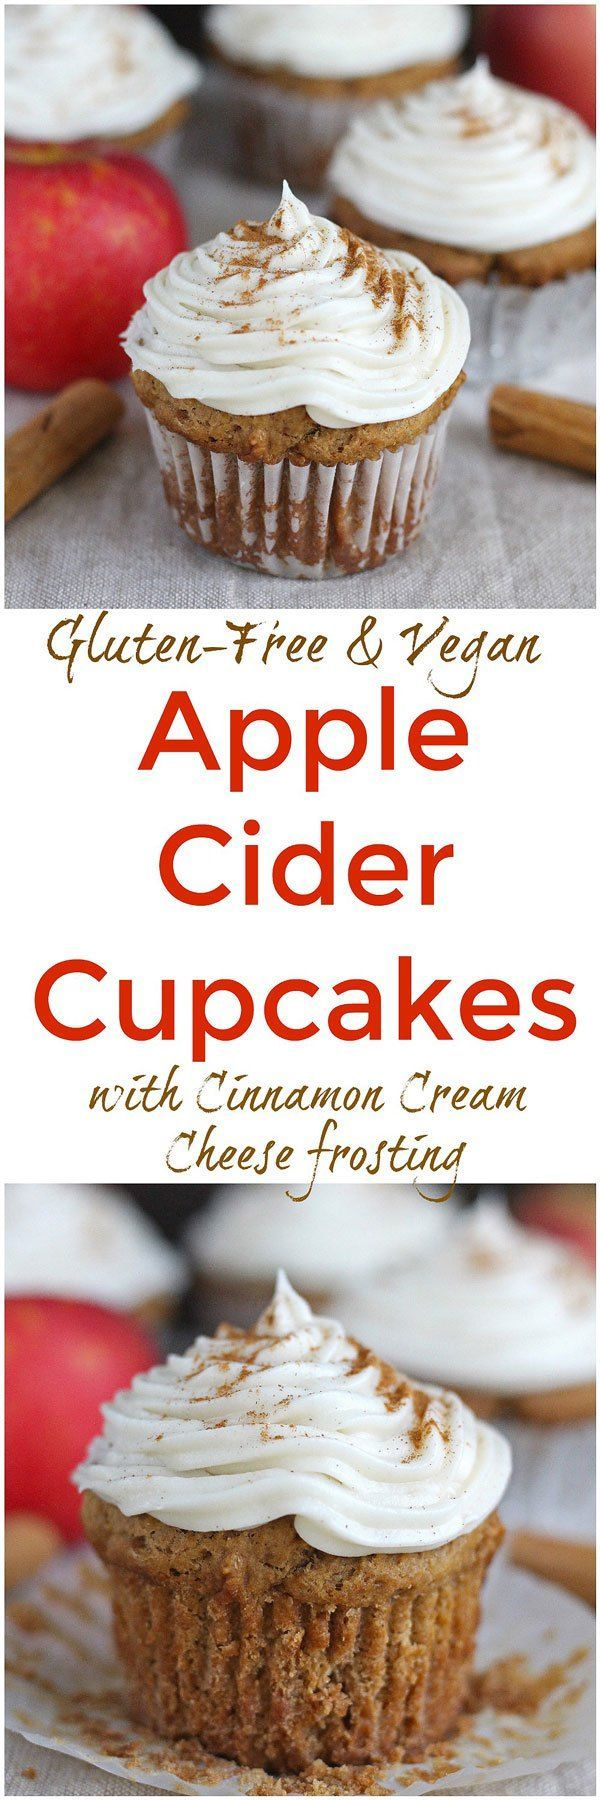 Apple Cider Cupcakes [Gluten-Free / Vegan] - Full of fresh apple flavor and topped with a delicious cinnamon cream cheese frosting, these Apple Cider Cupcakes are gluten-free and vegan!